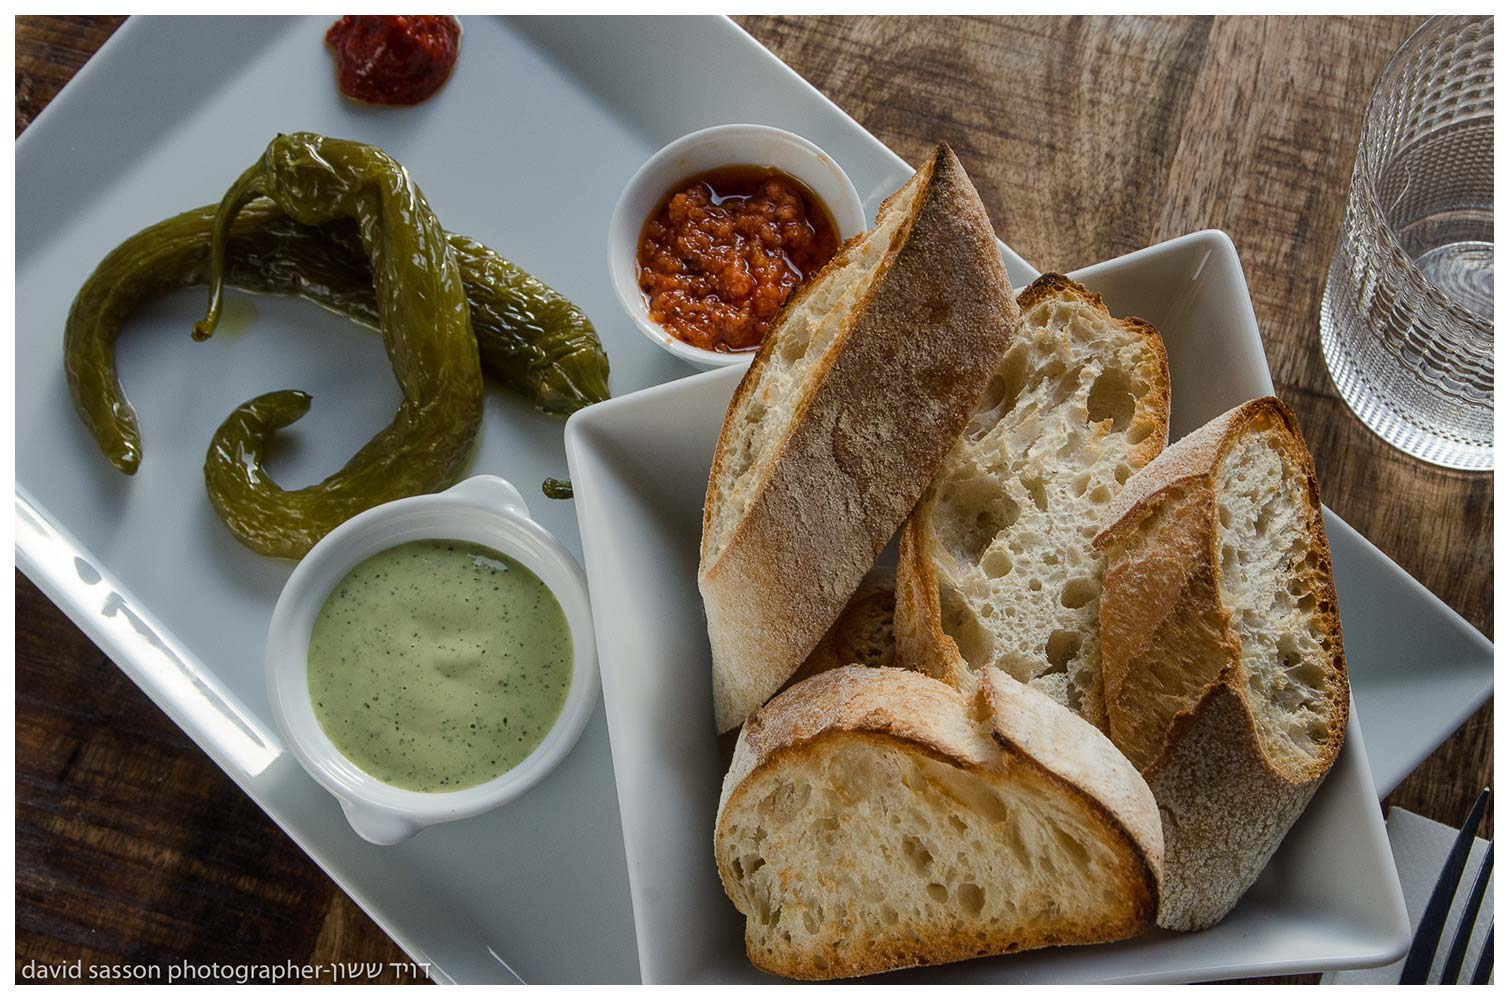 Food photography and atmosphere